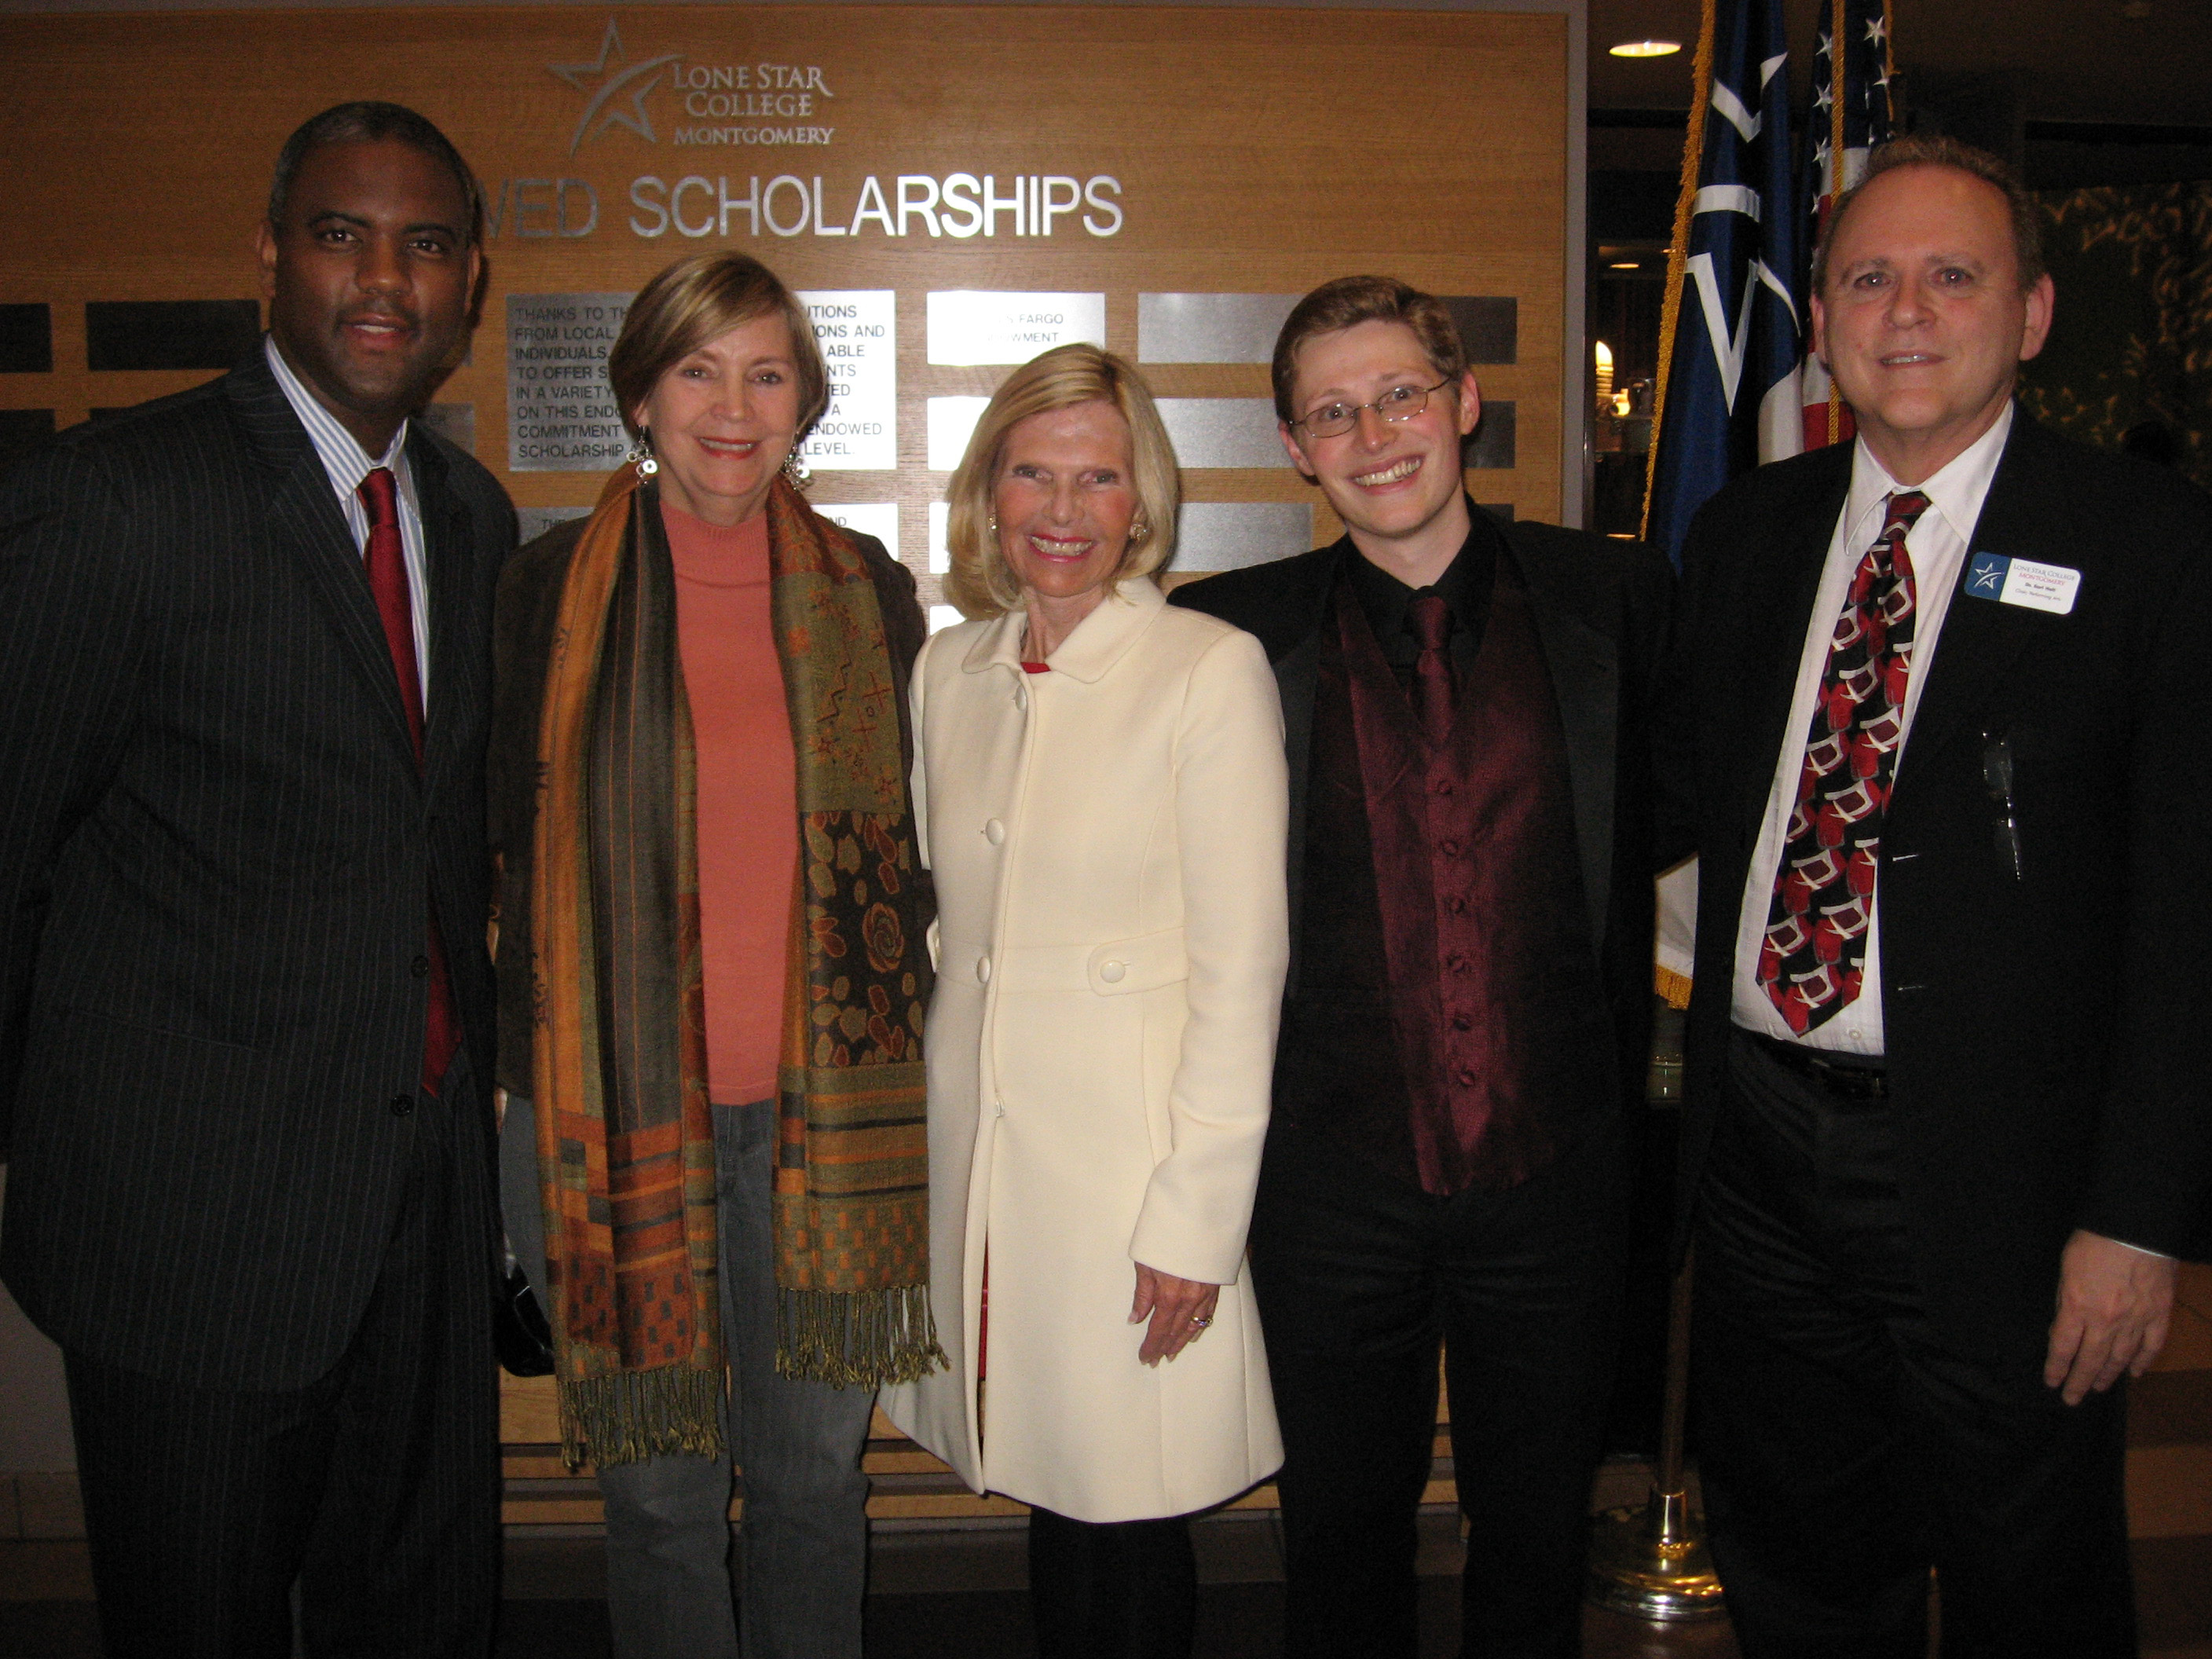 Dr. Austin Lane, president of Lone Star College-Montgomery, Mary Jo O�Neal, development director of Interfaith, Dr. Ann Snyder, CEO and president of Interfaith, Dominick DiOrio, director of Choirs LSC-Montgomery and Dr. Earl Holt, chair of the performing arts at LSC-Montgomery.